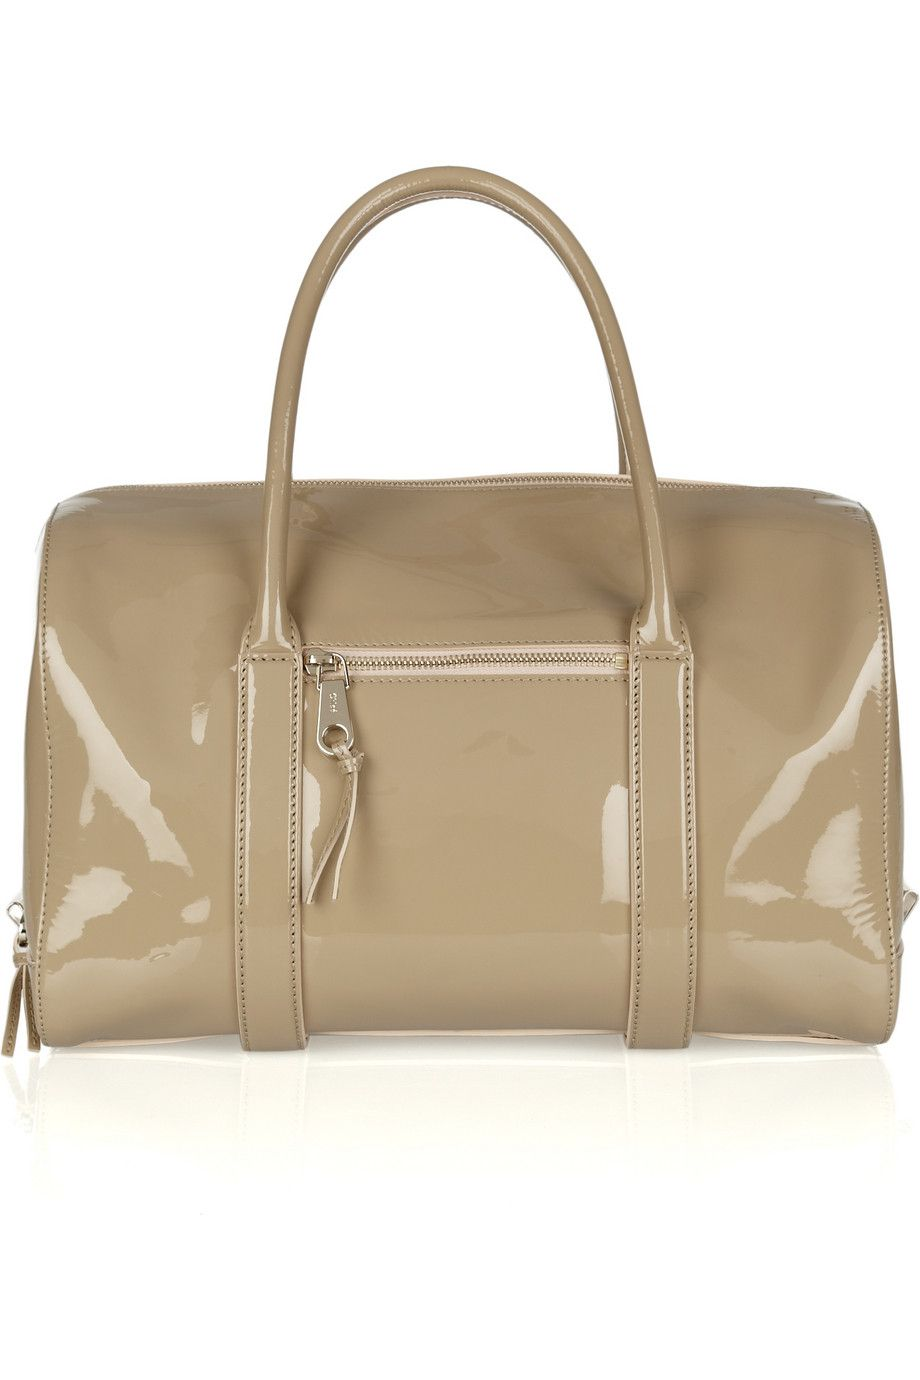 f0007ebef13f Chloe Madeleine patent-leather duffle bag in taupe